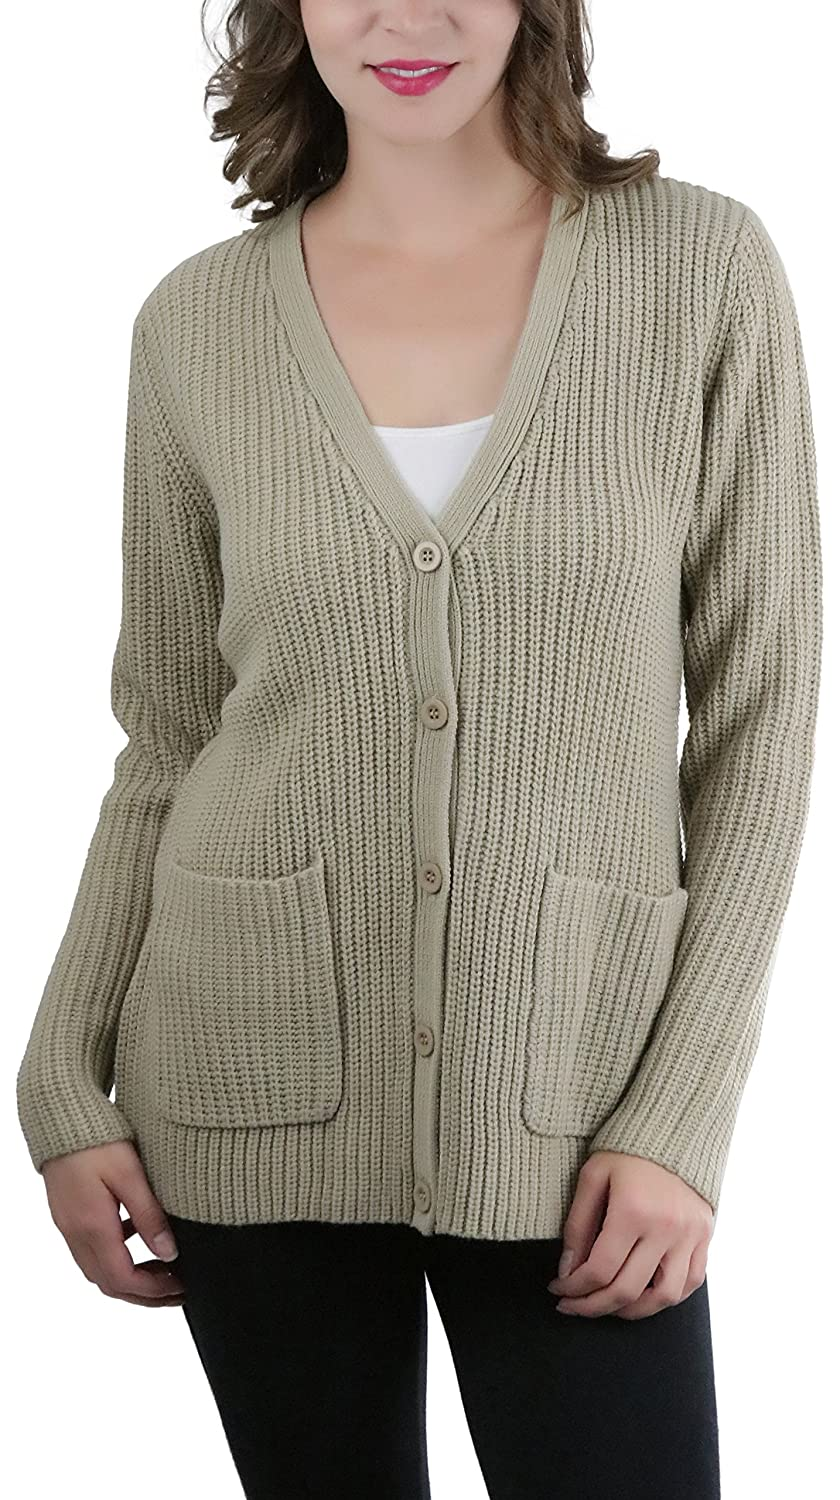 Sand ToBeInStyle Women's Knitted Acrylic Button Up Cardigan Sweater